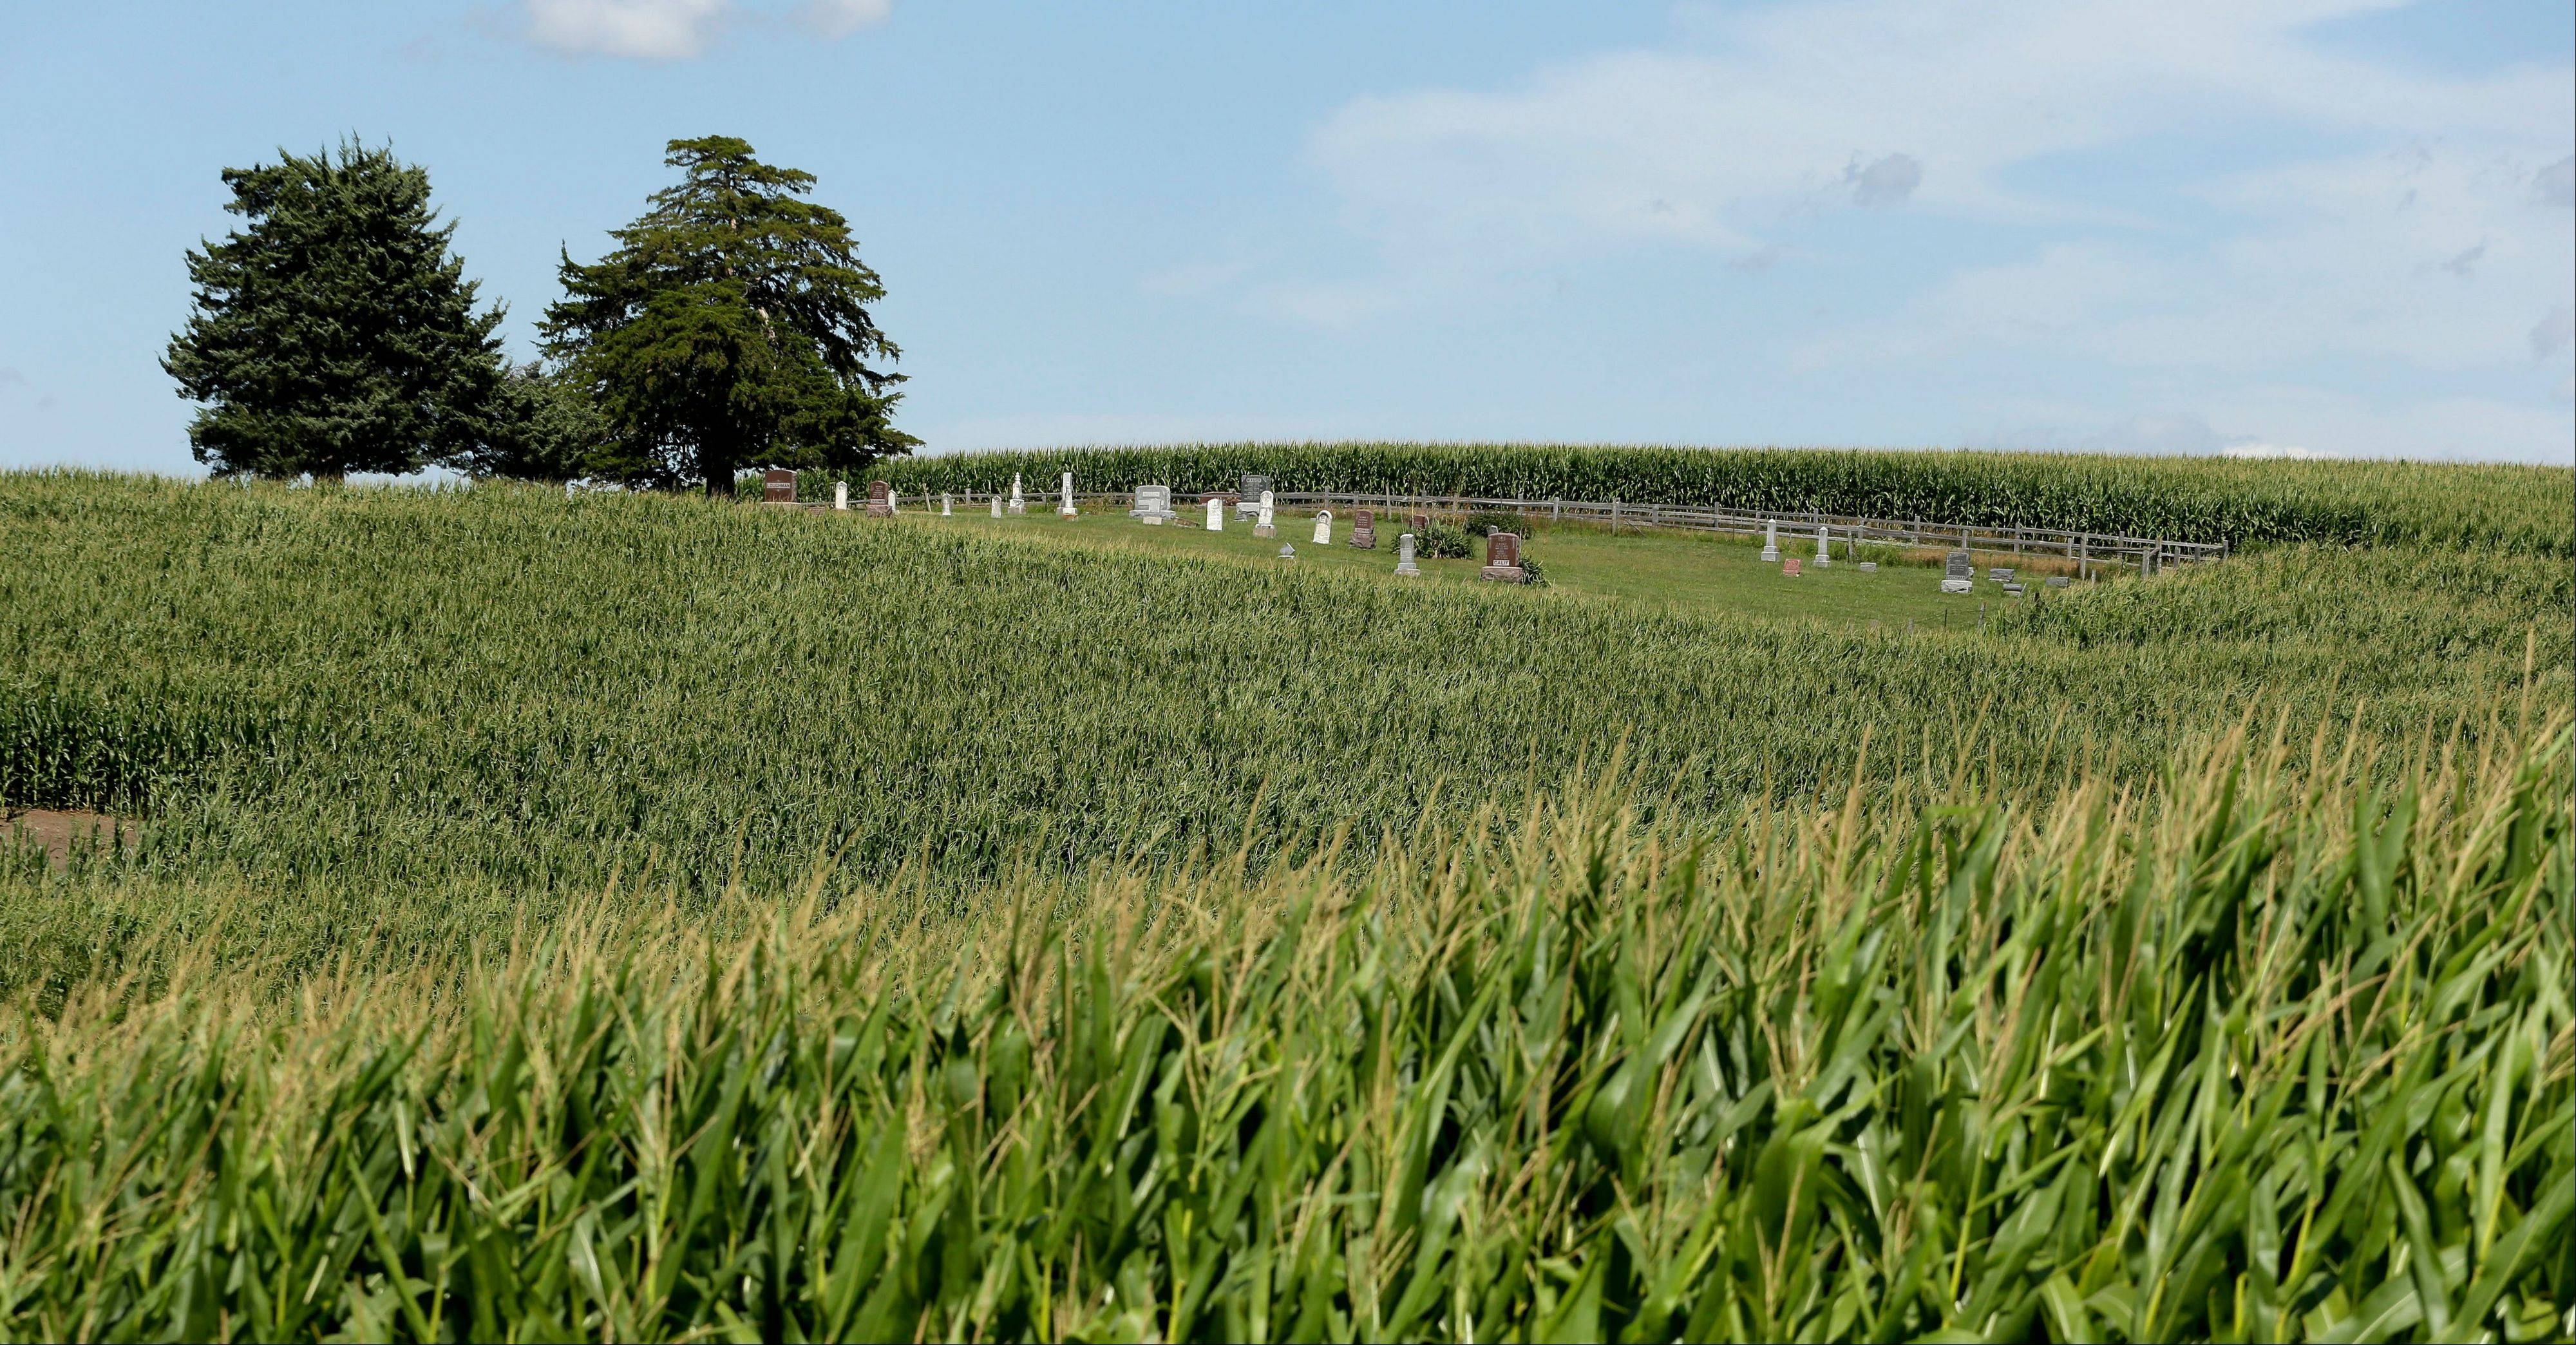 In this July 26, 2013 photo, the Sturgeon Cemetery near Sewal, Iowa stands as an island among corn plants. Forty-four percent of the nation's corn crop in 2012 was used for fuel, about twice the rate seen in 2006.